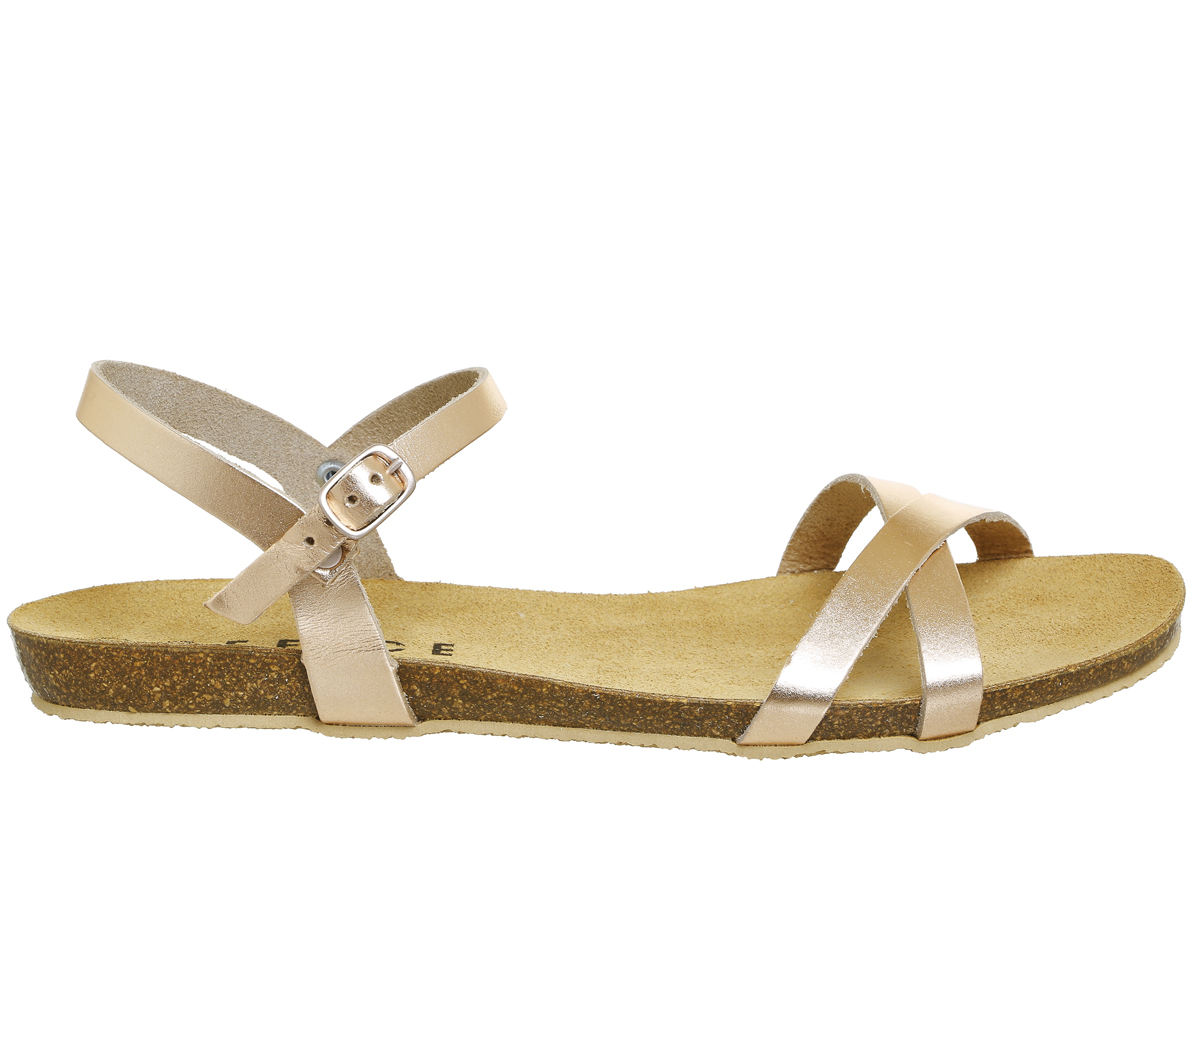 72320904ffb0 Womens office bronze leather buckle sandals uk size ex display ebay jpg  1200x1049 Sandals for office